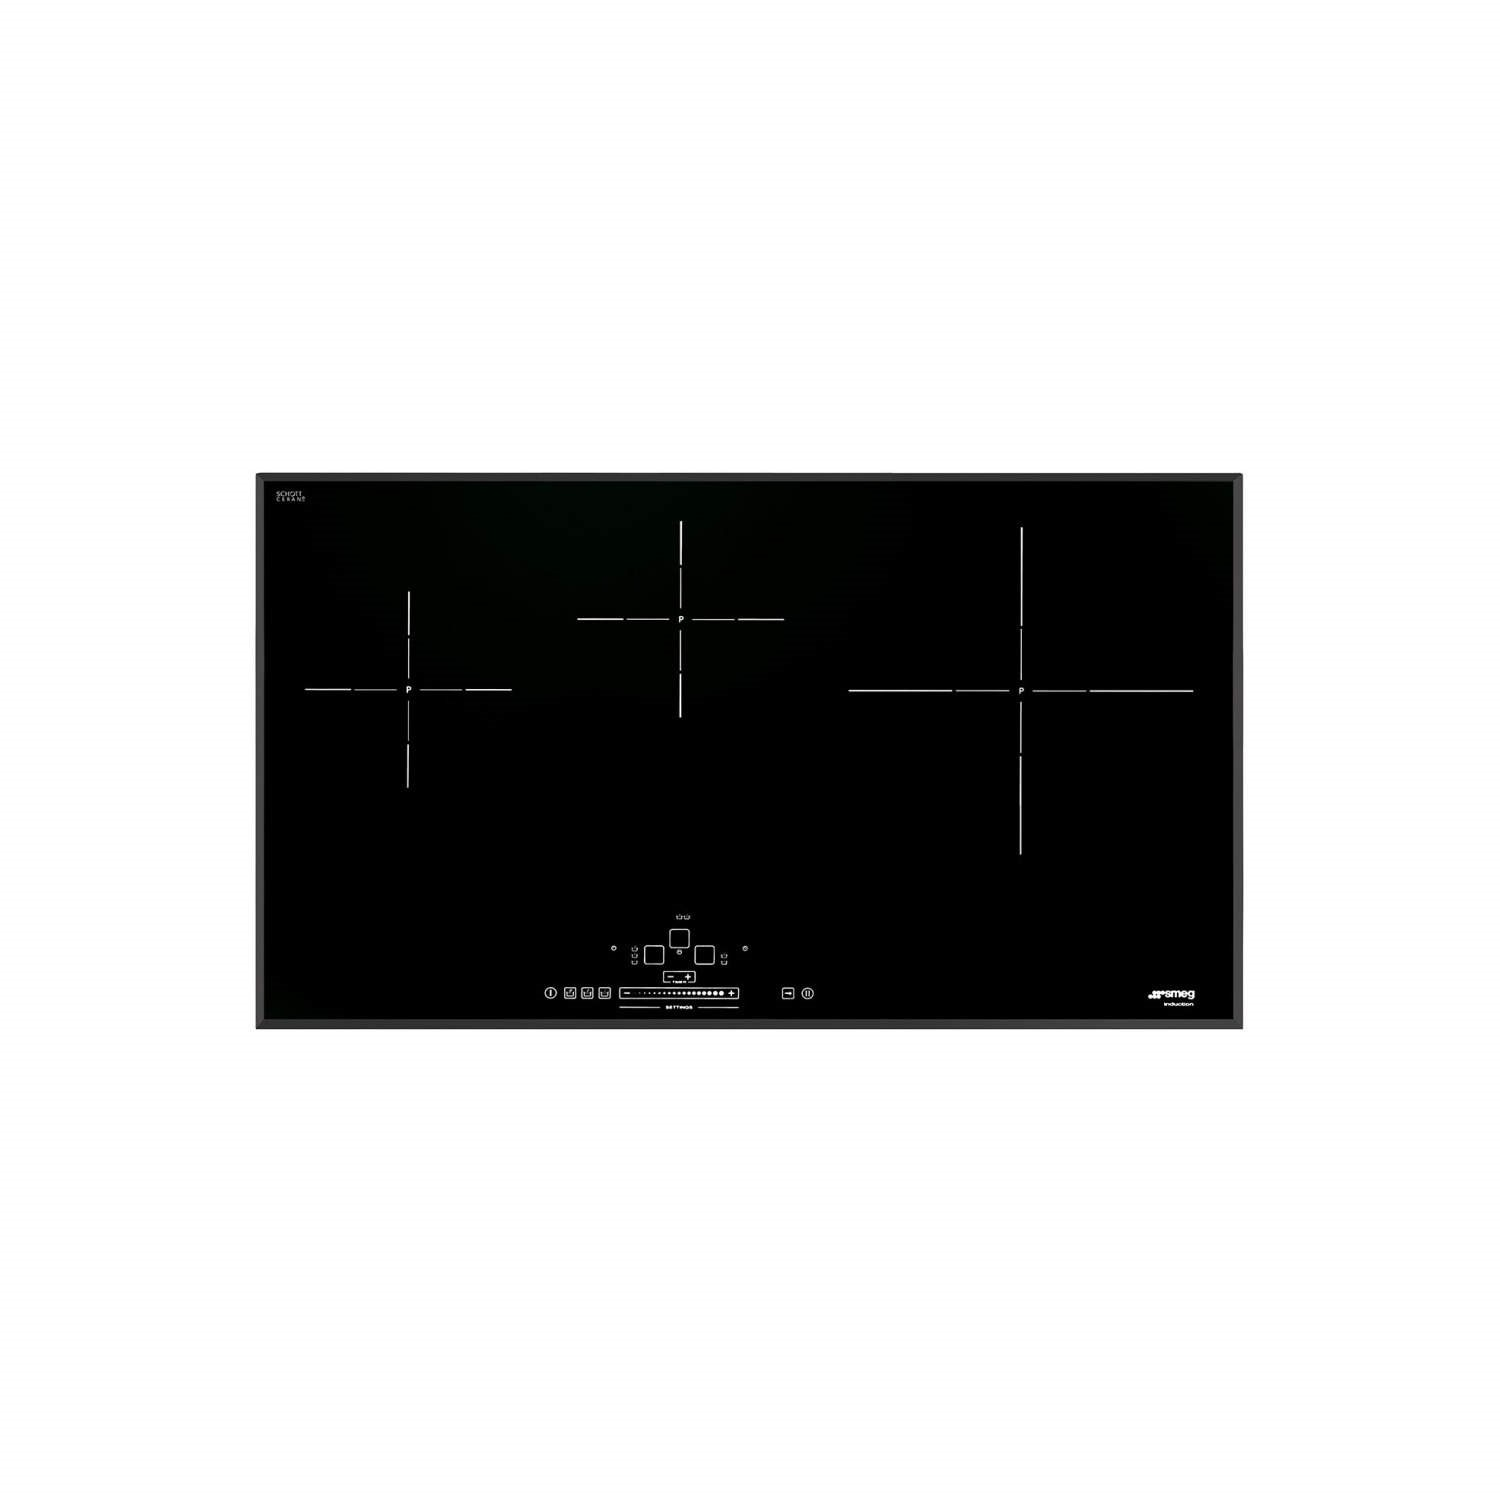 smeg induction hob wiring diagram cute origami cat sih5935b slim 90cm 3 zone angled edge glass with touch controls black